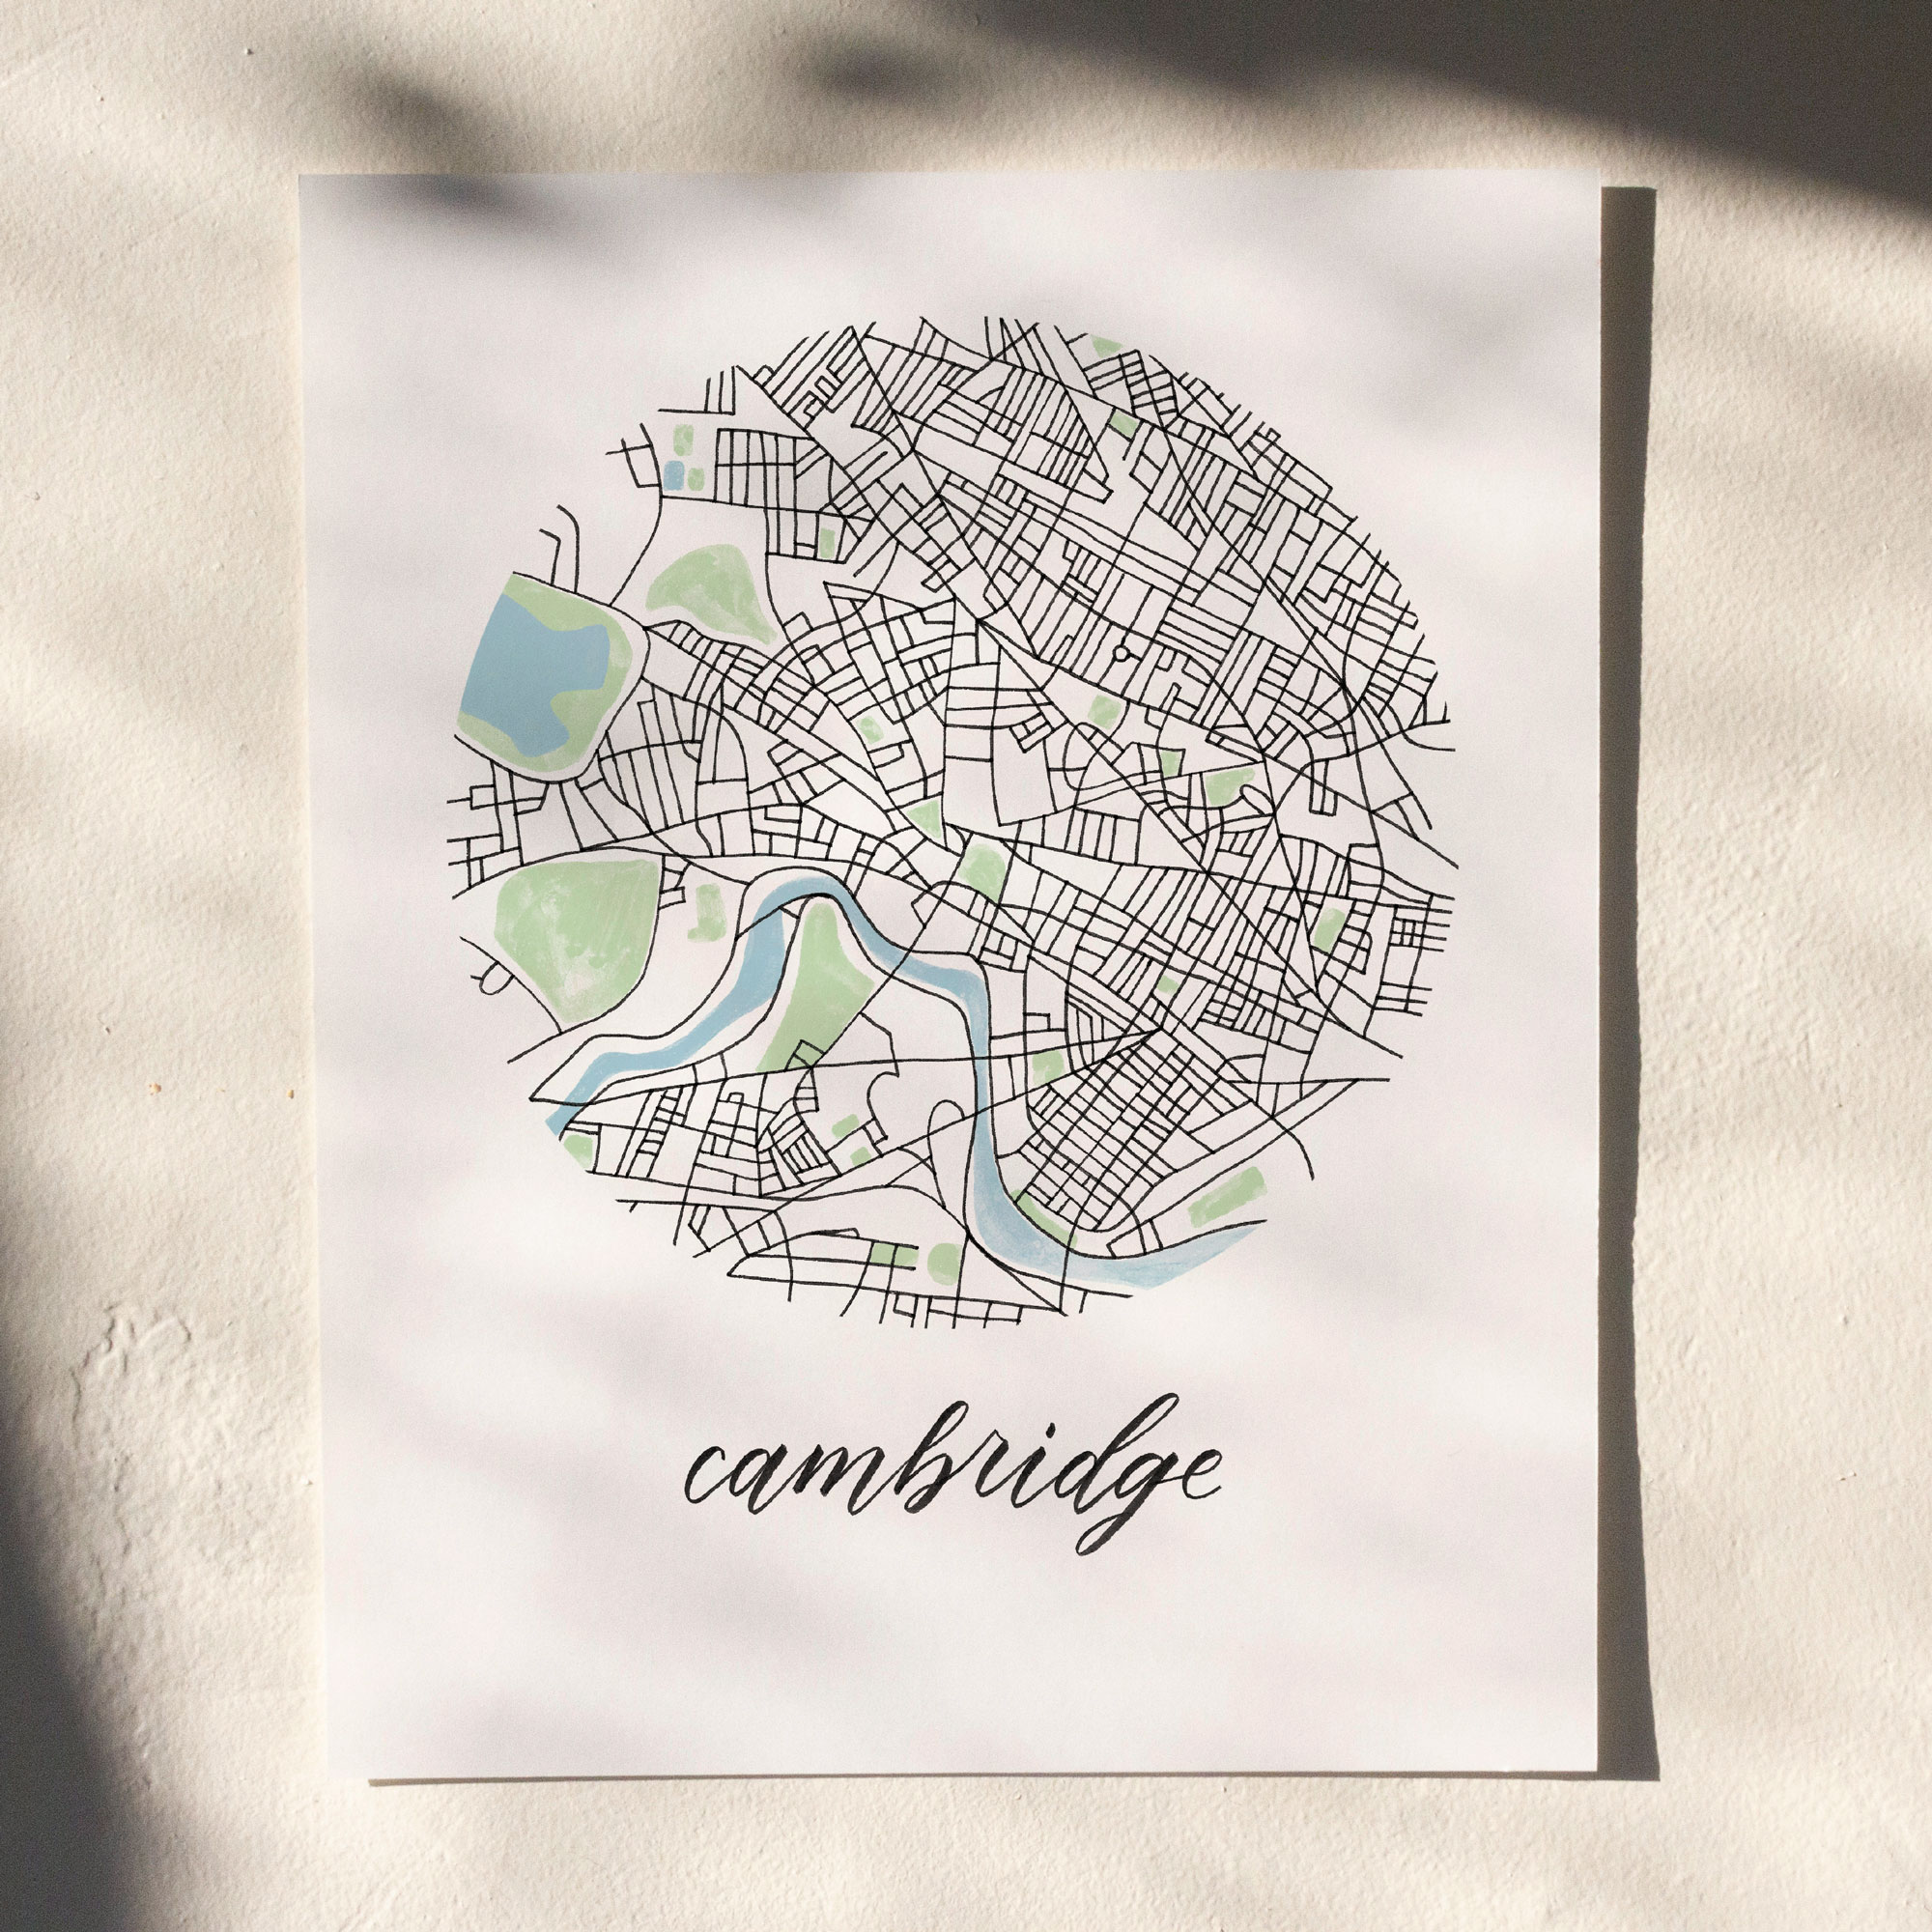 Cambridge, Boston Map Print hanging on white wall with leaf shadows across the image